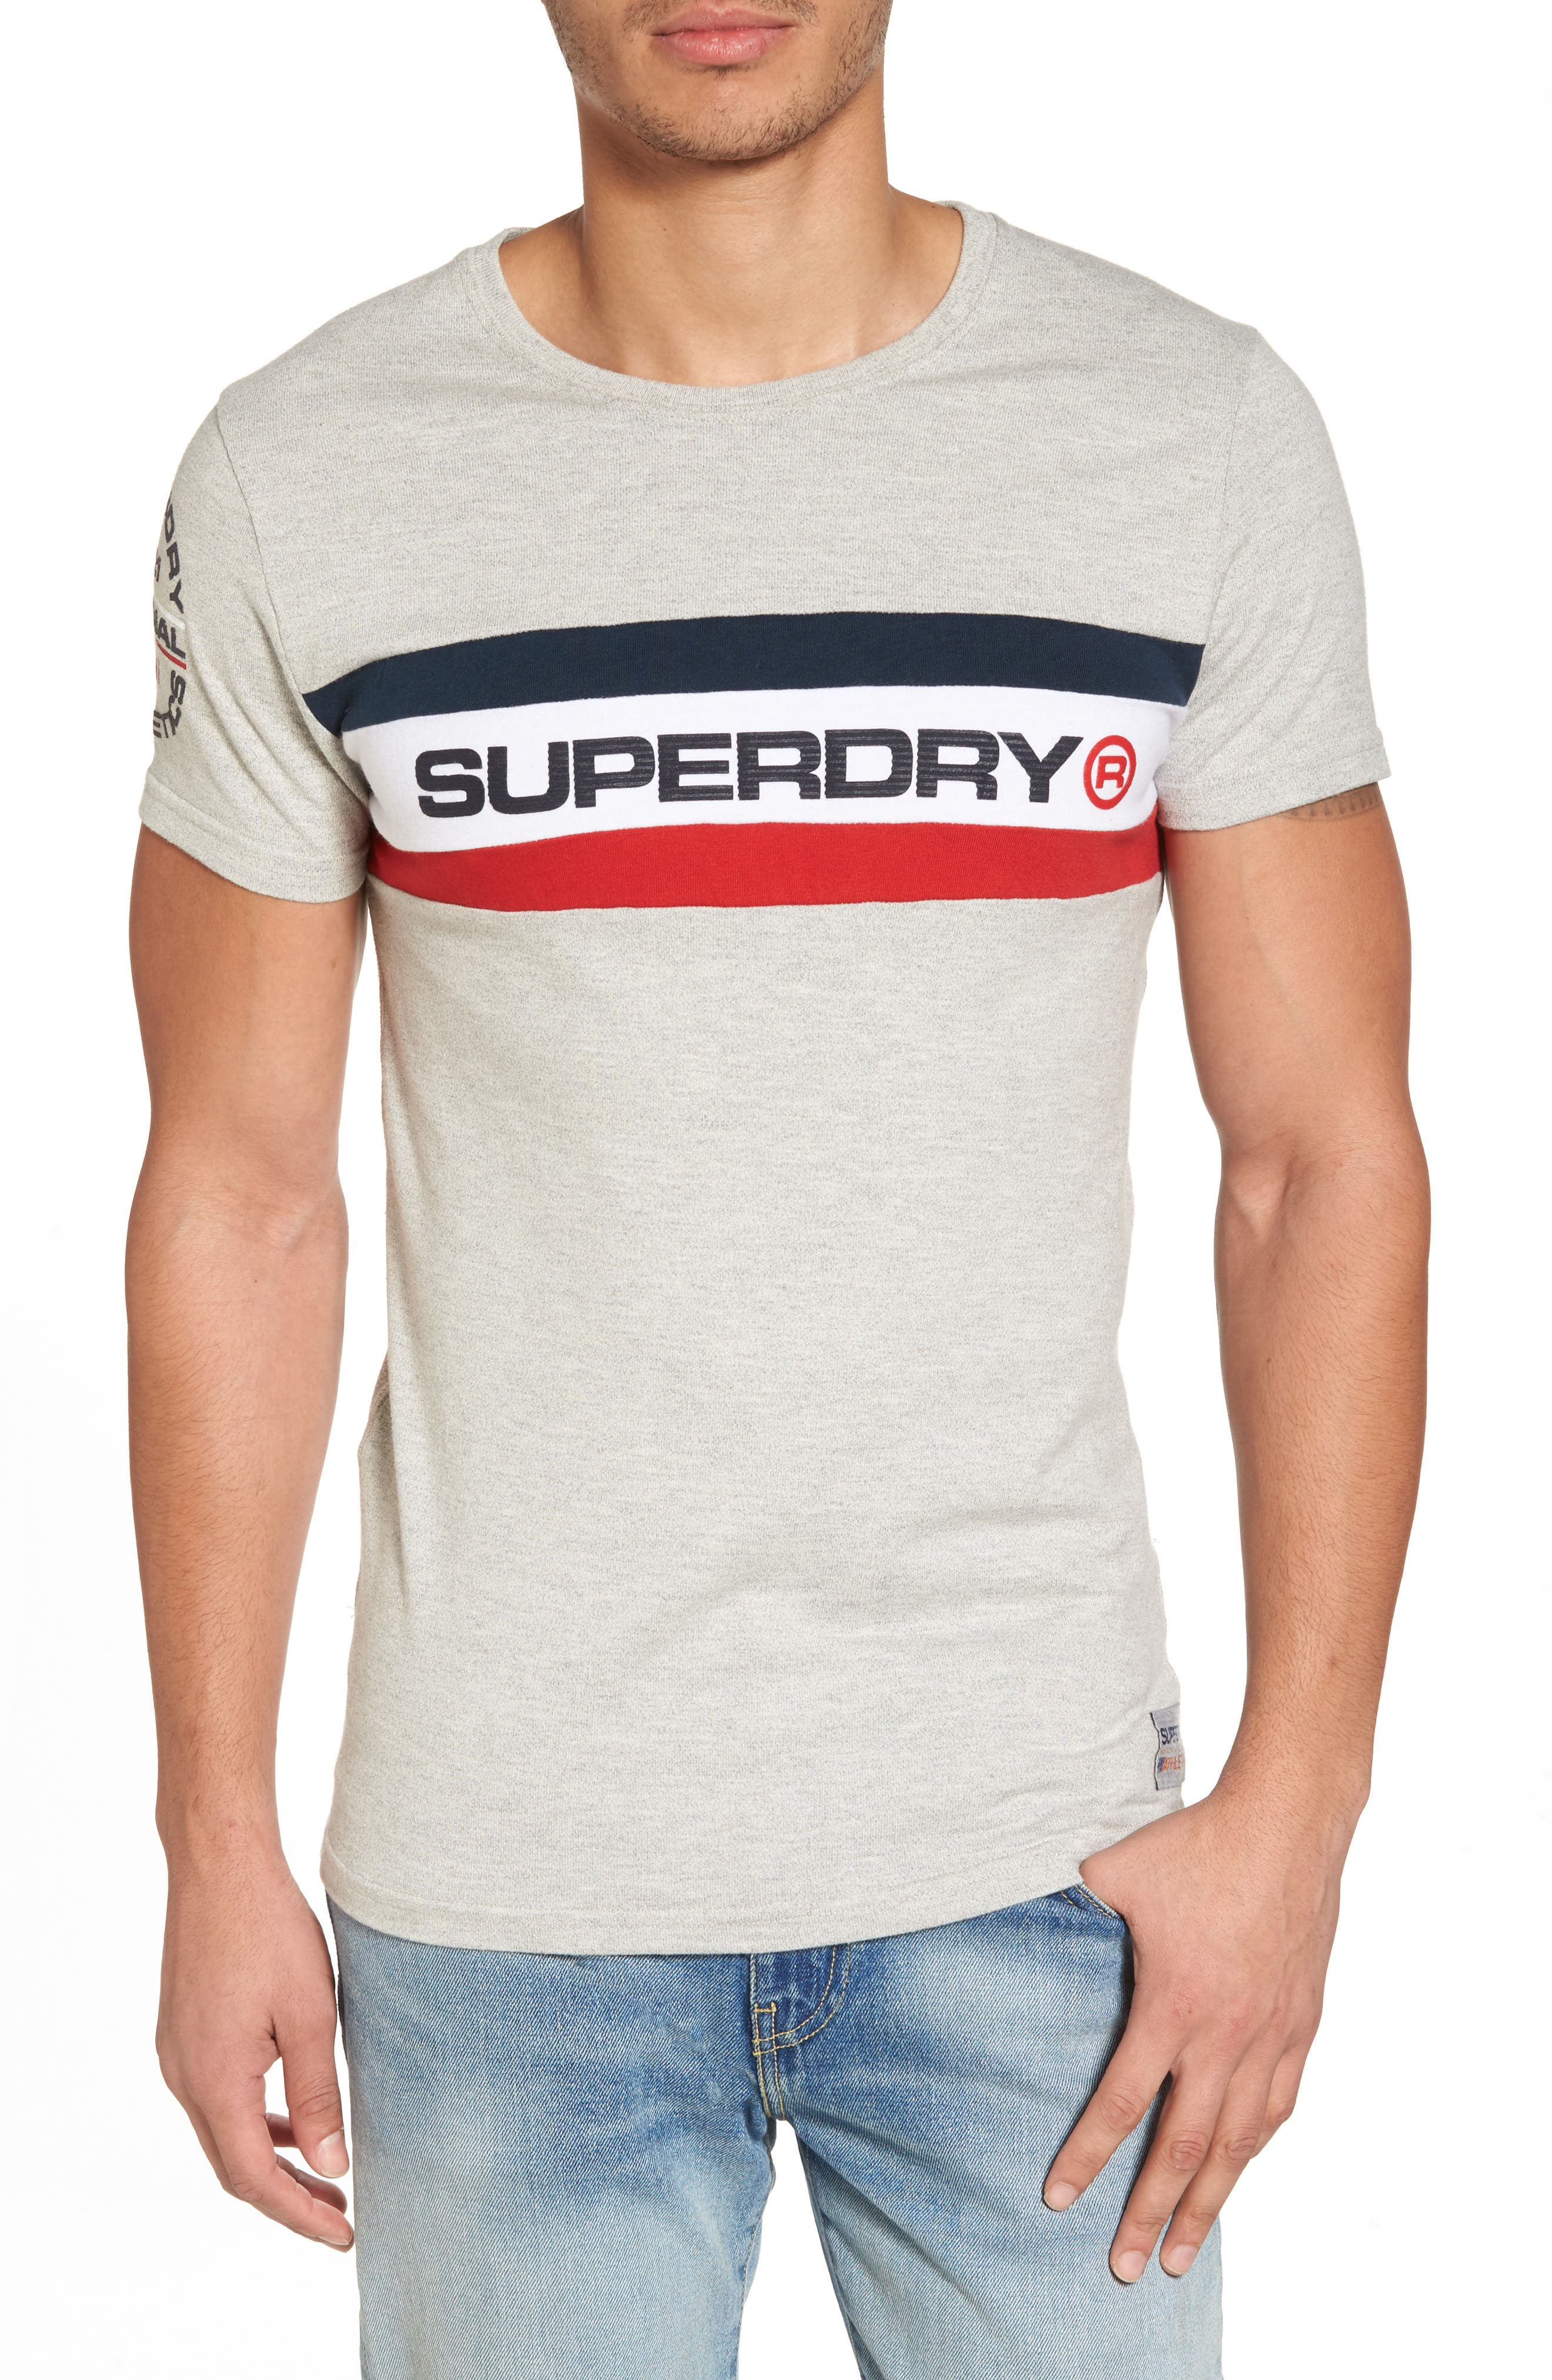 Trophy Chest Band T-Shirt,                             Main thumbnail 1, color,                             Superdry Stadium Grey Grindle